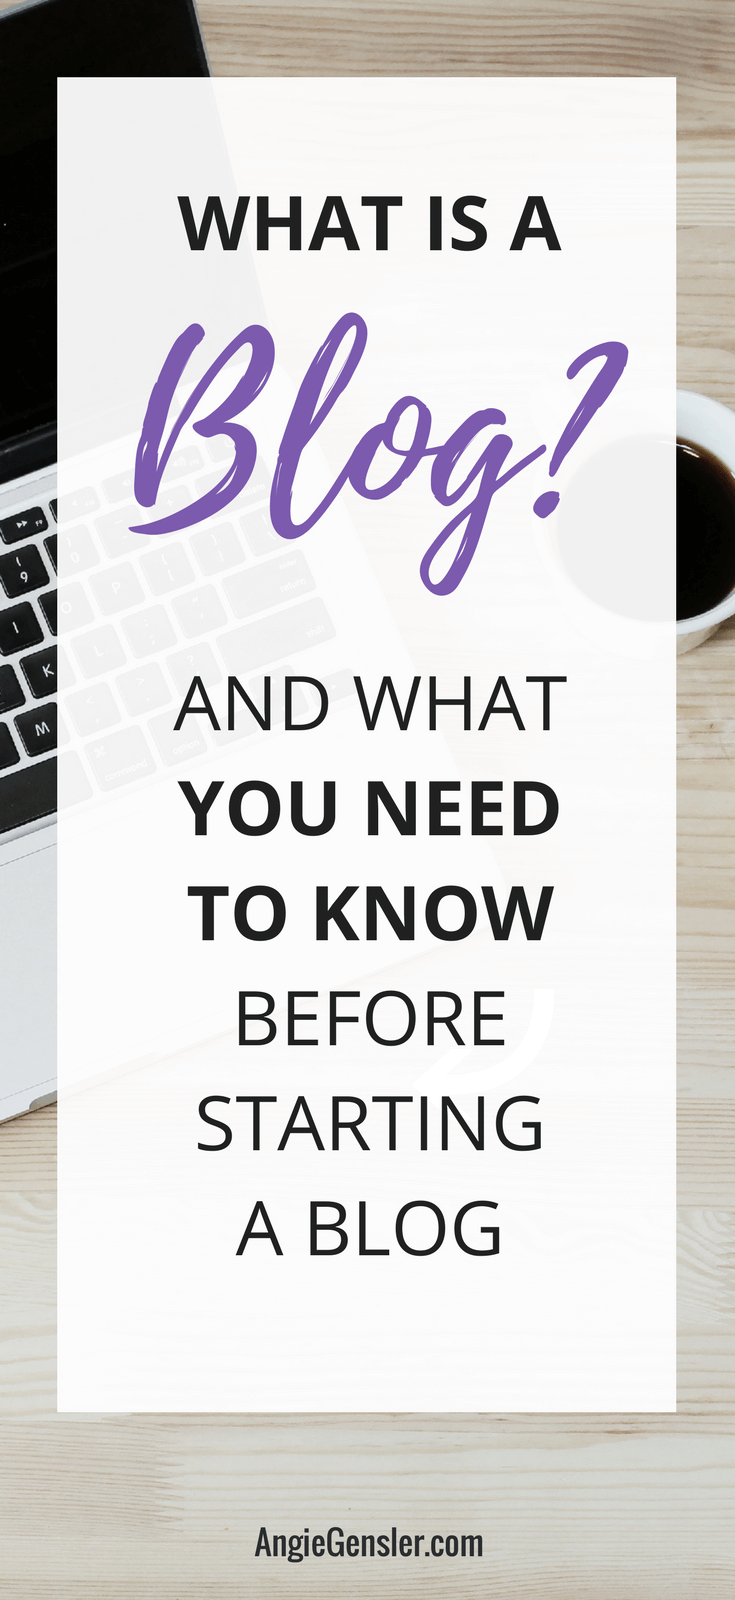 What is a blog and what you need to know before starting one - 2